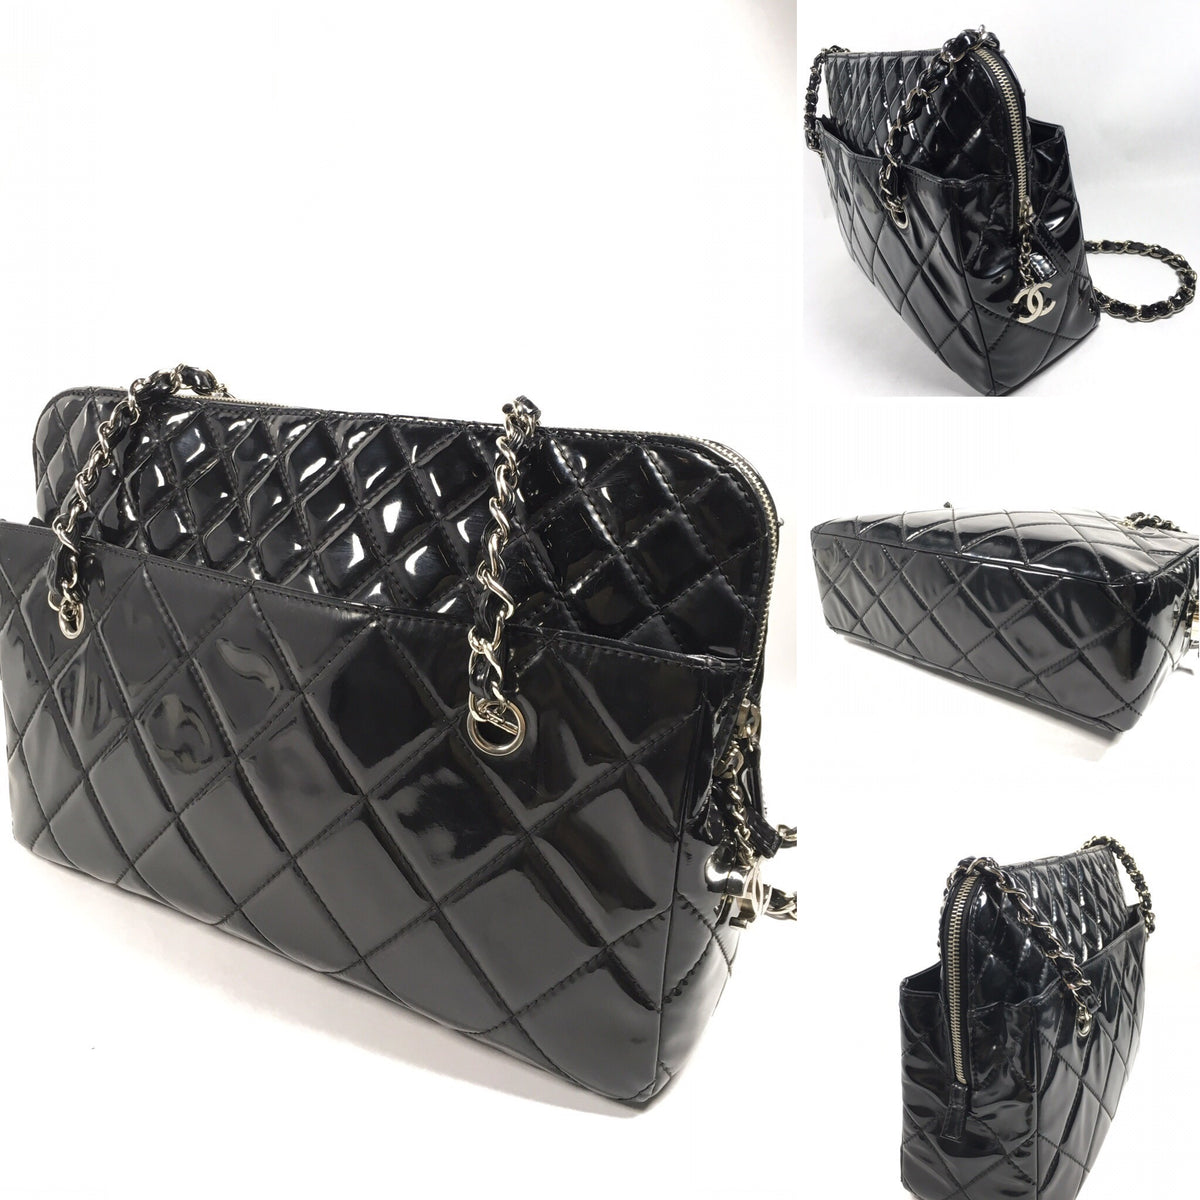 cb9830b64c1a15 Authentic Chanel Quilted Patent Leather Shoulder Bag – Spade Creations